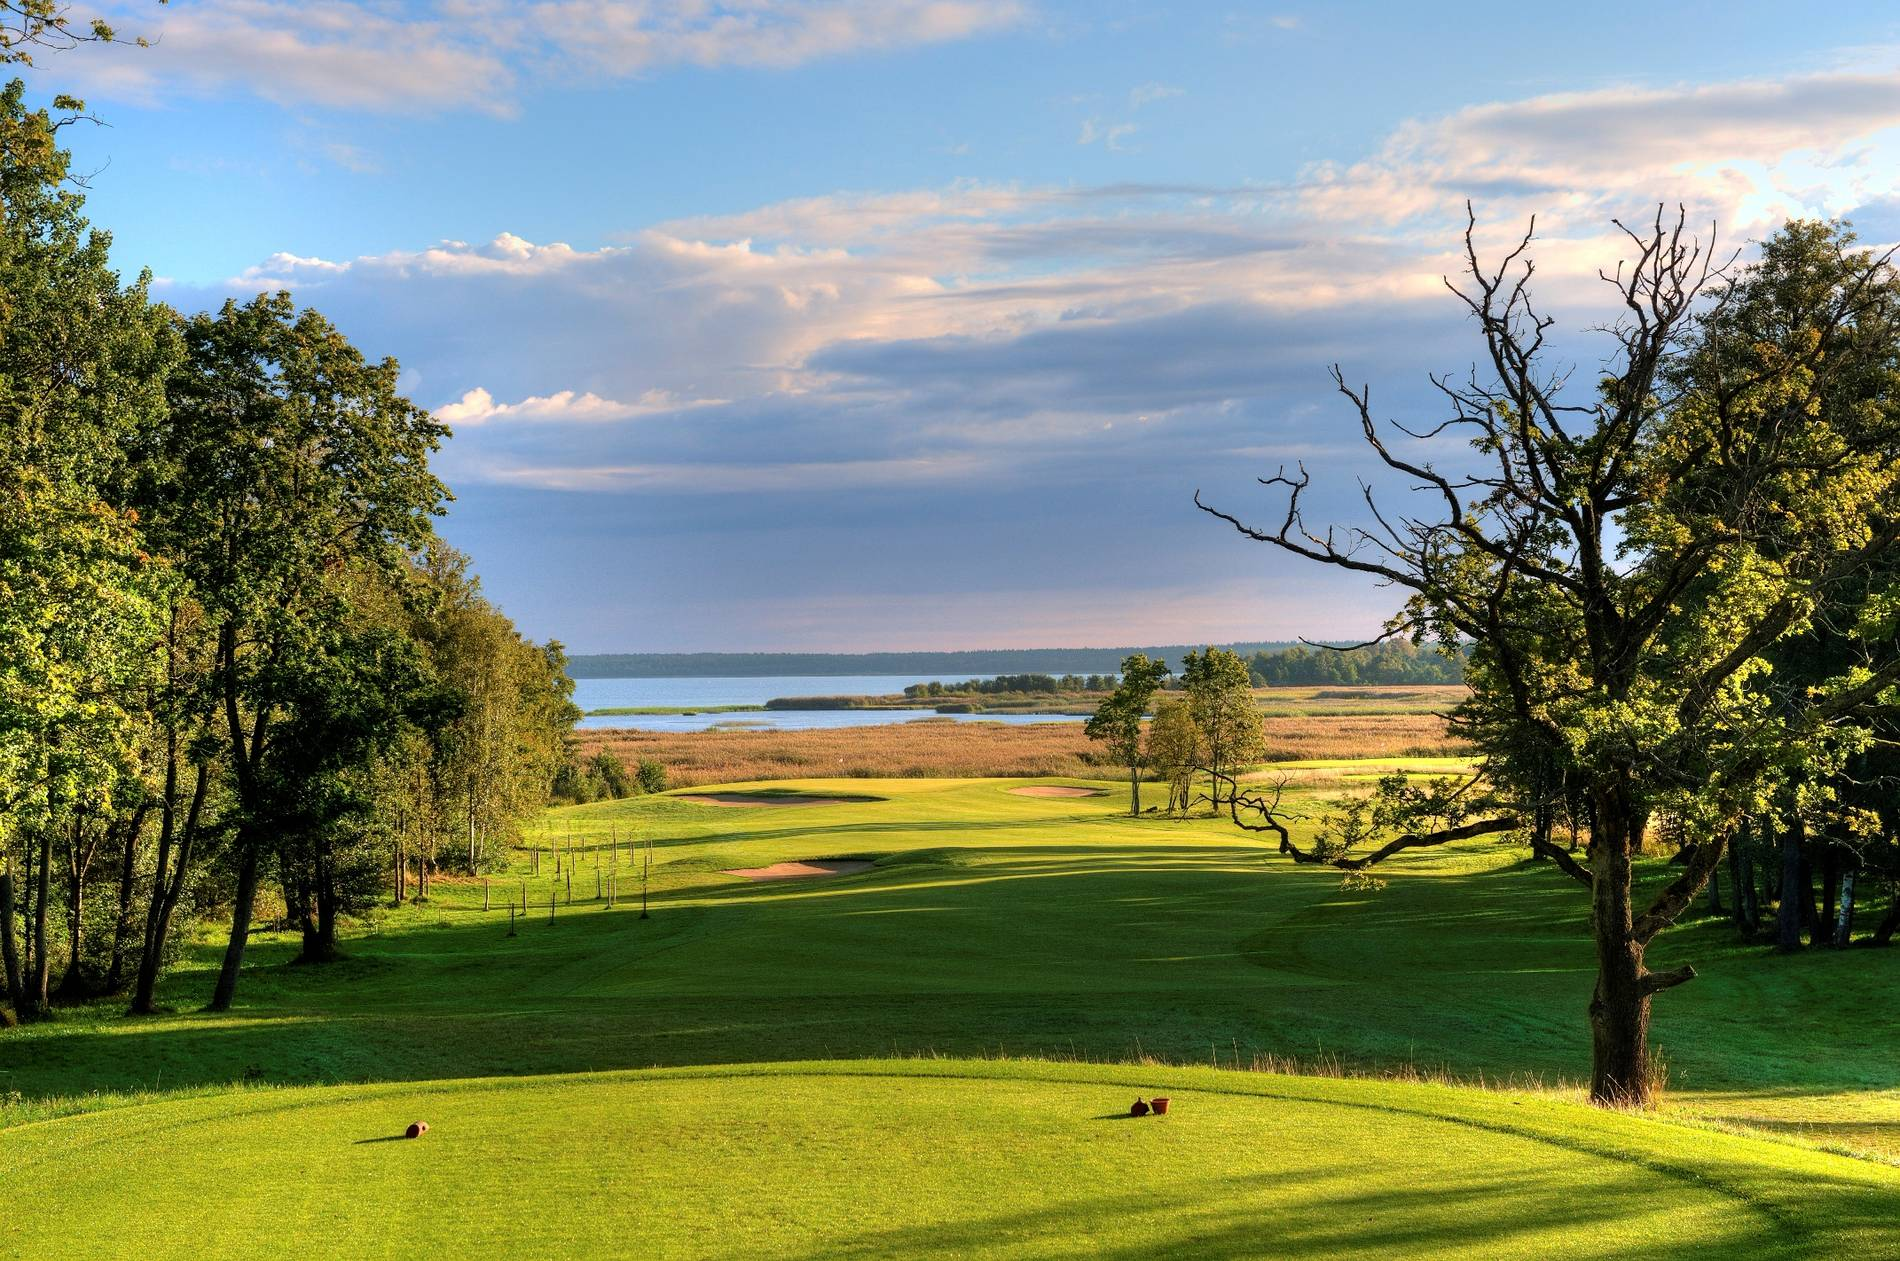 Estonian Golf & Country Club (EGCC)